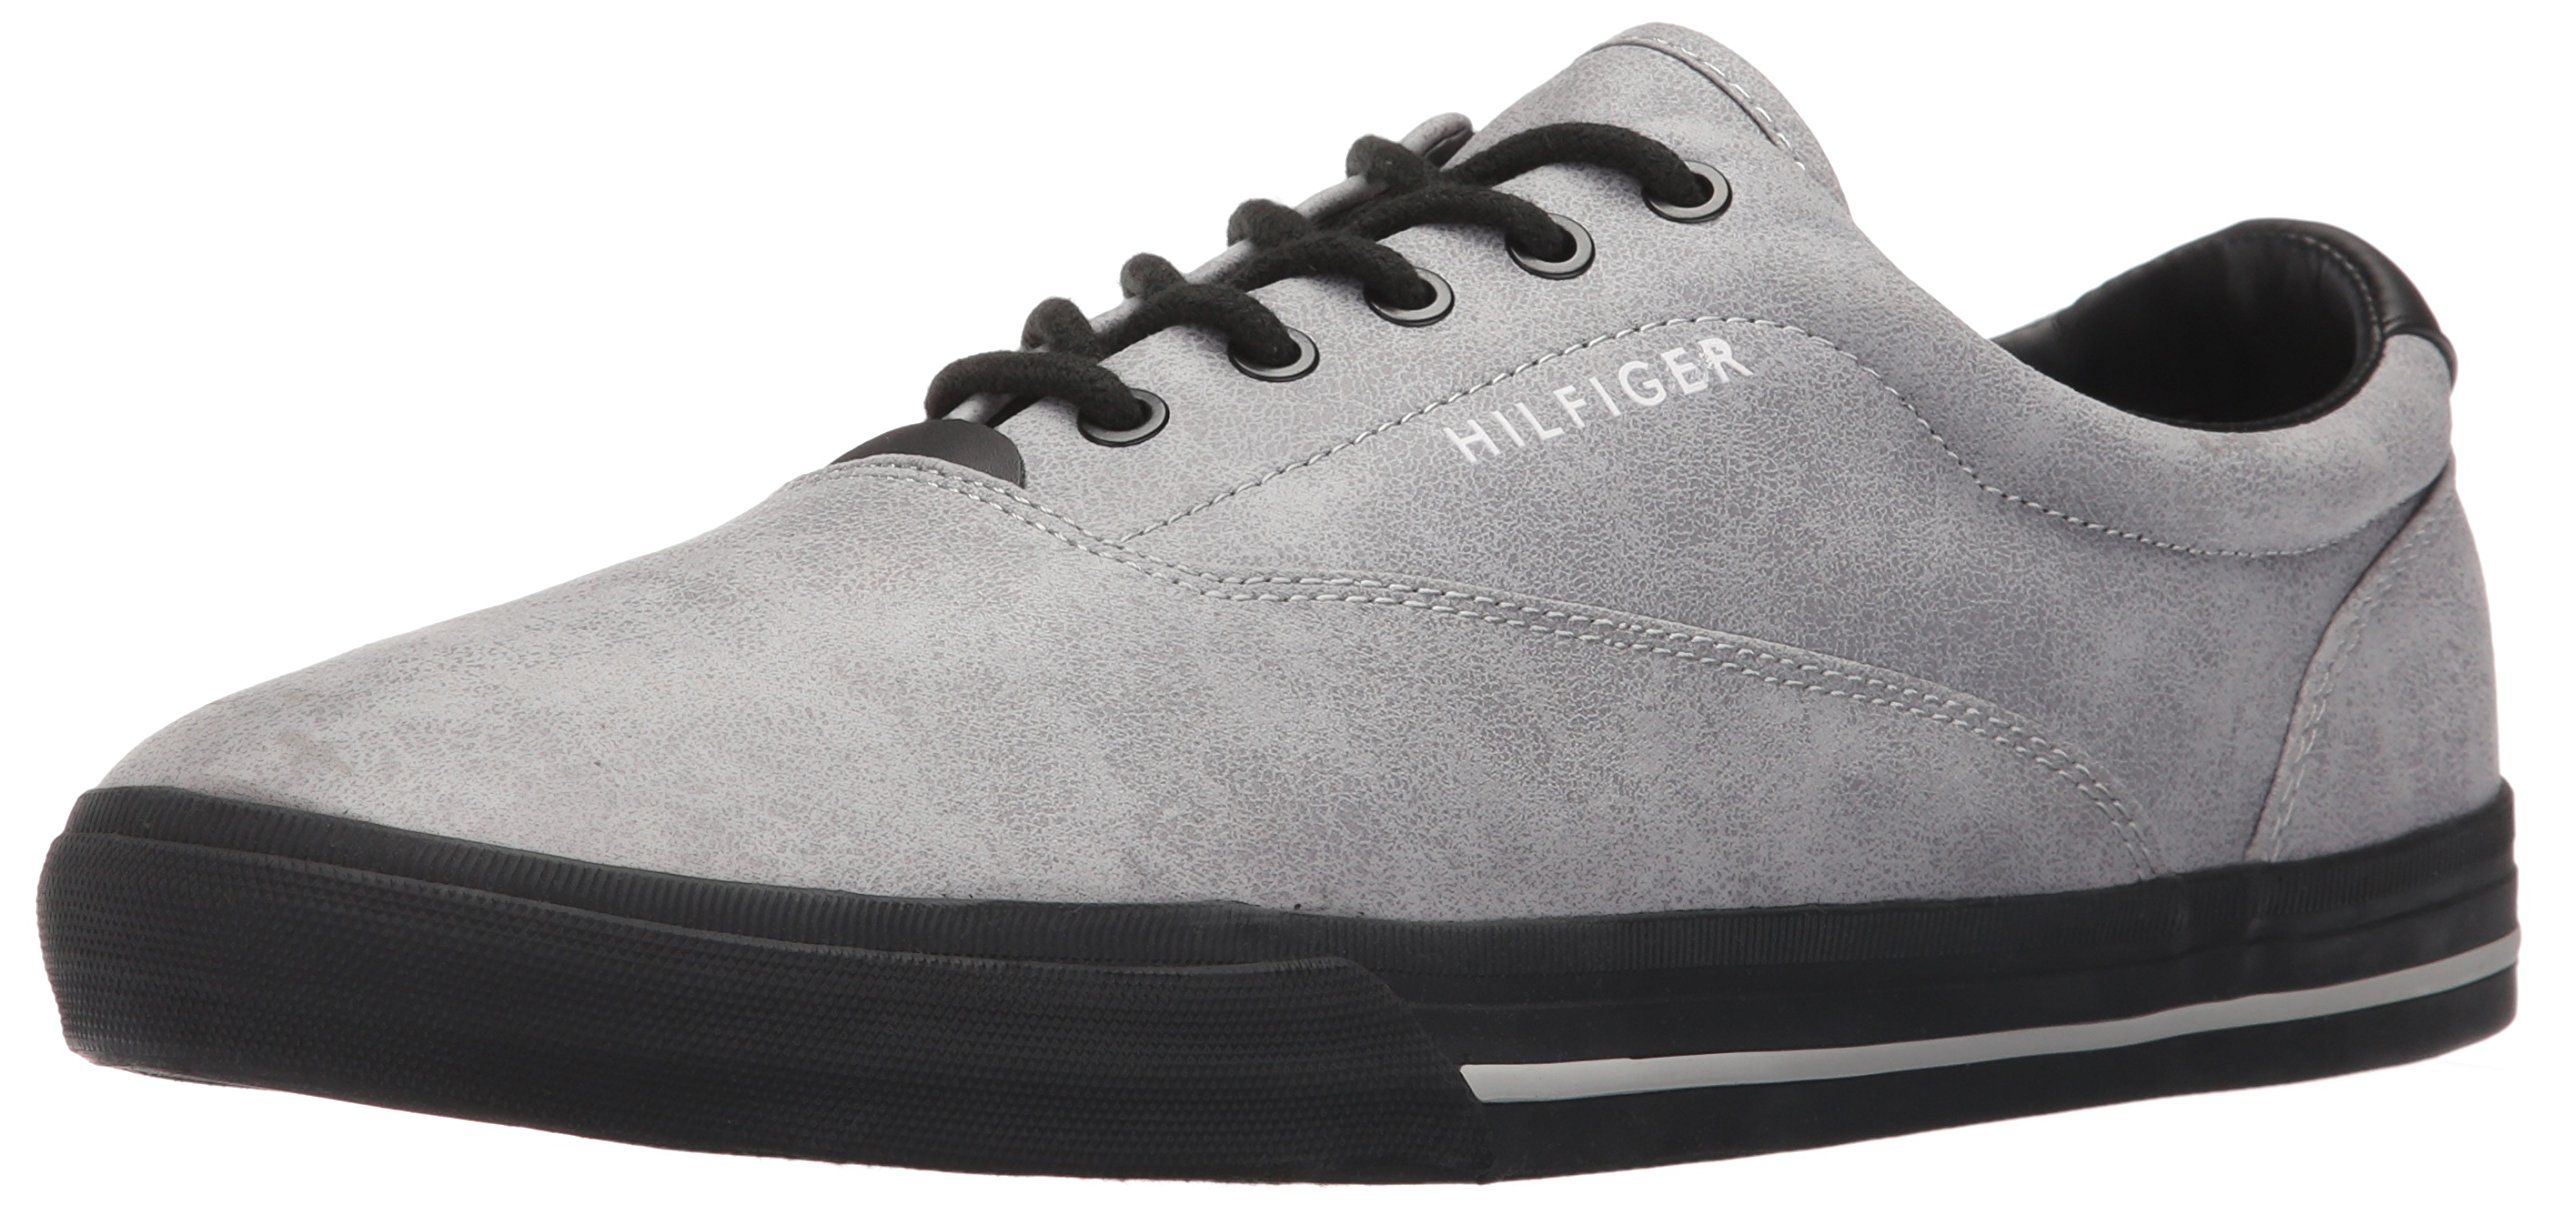 db9463ebc6 Tommy Hilfiger Mens Phelipo 2 Fashion Sneaker Grey 11 M US   You can find  out